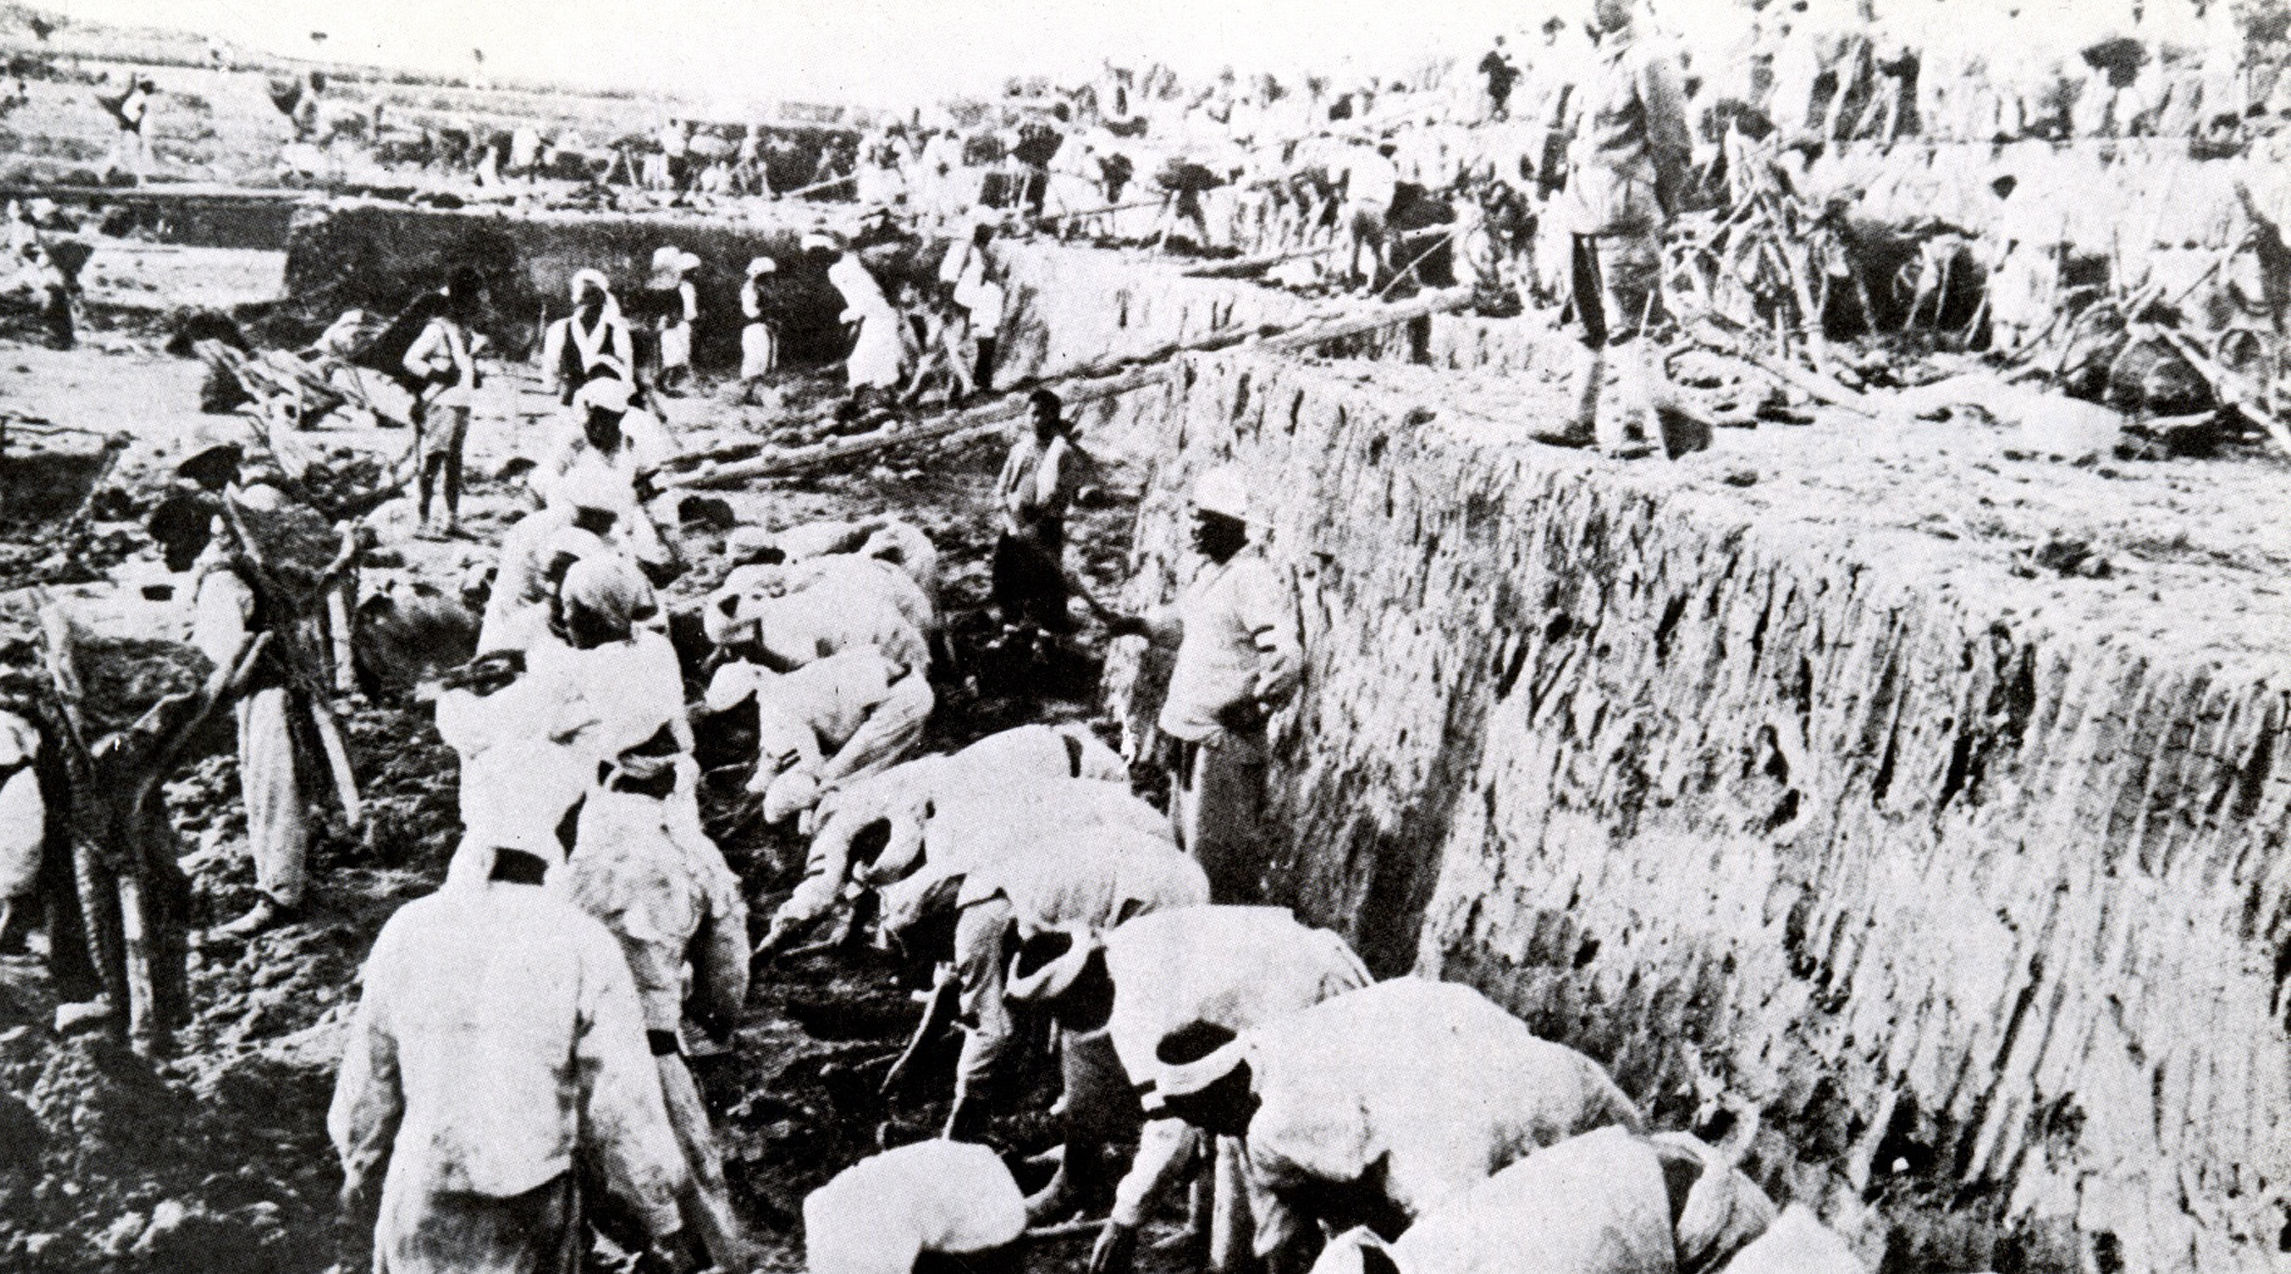 This archives picture received from South Korean newspaper Dong-A Ilbo on August 10, 2010 and taken in 1937 in South Jeolla province shows Korean people working at a gold mine under the surveillance of Japanese soldiers (R) during Japan's colonial rule between 1910 and 1945 in Korea.